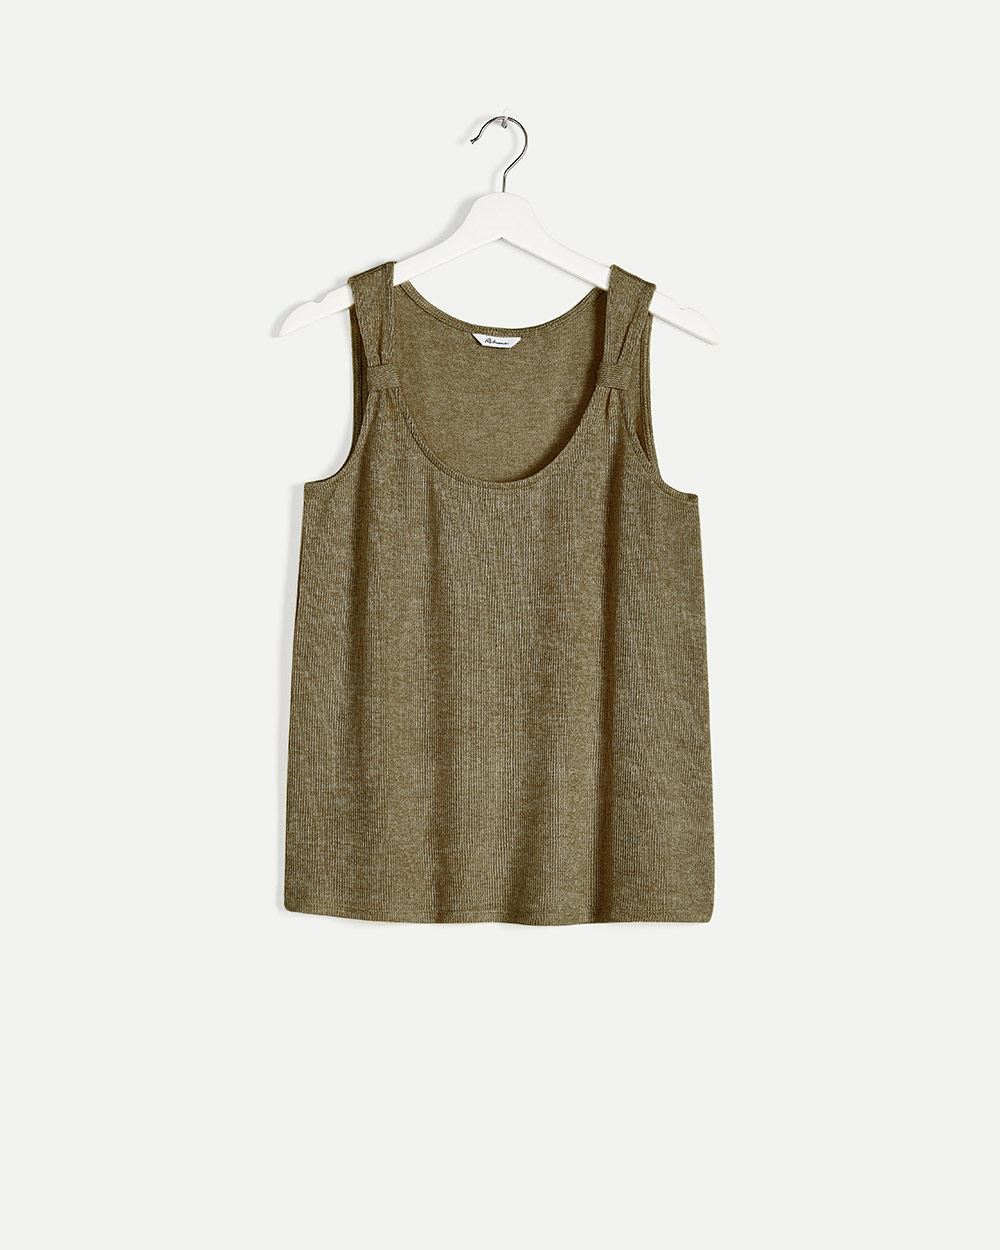 Scoop Neck Cami with Knotted Shoulders